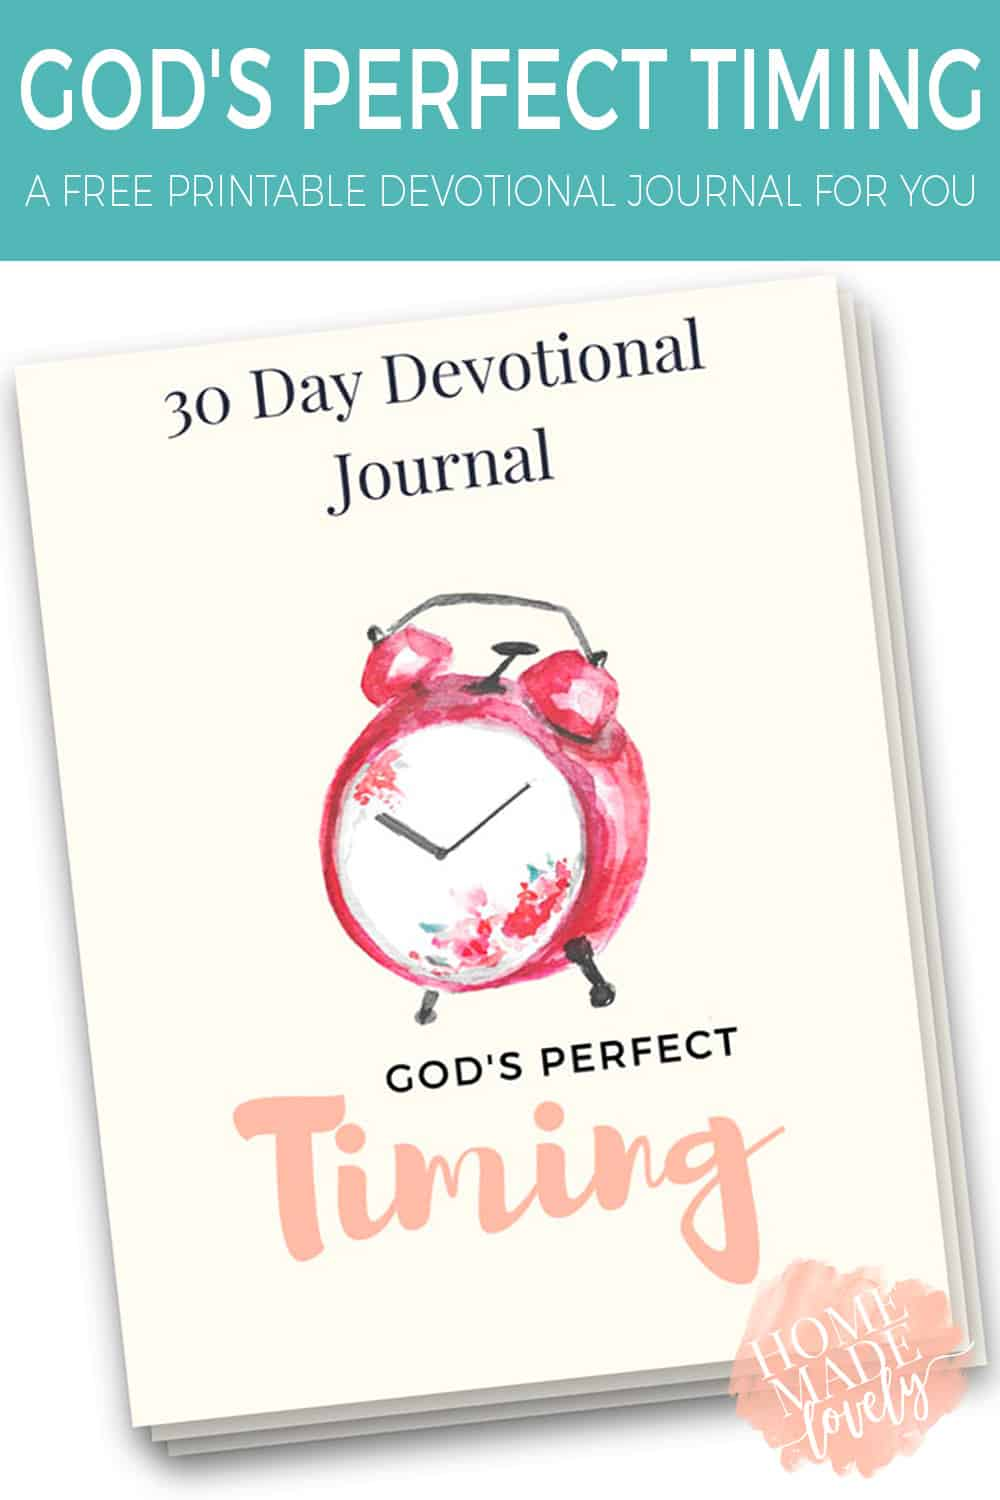 For our 22nd anniversary, we are taking a look back and really seeing God's hand in our marriage. And to celebrate, we're giving you a free God's Perfect Timing printable devotional Journal!